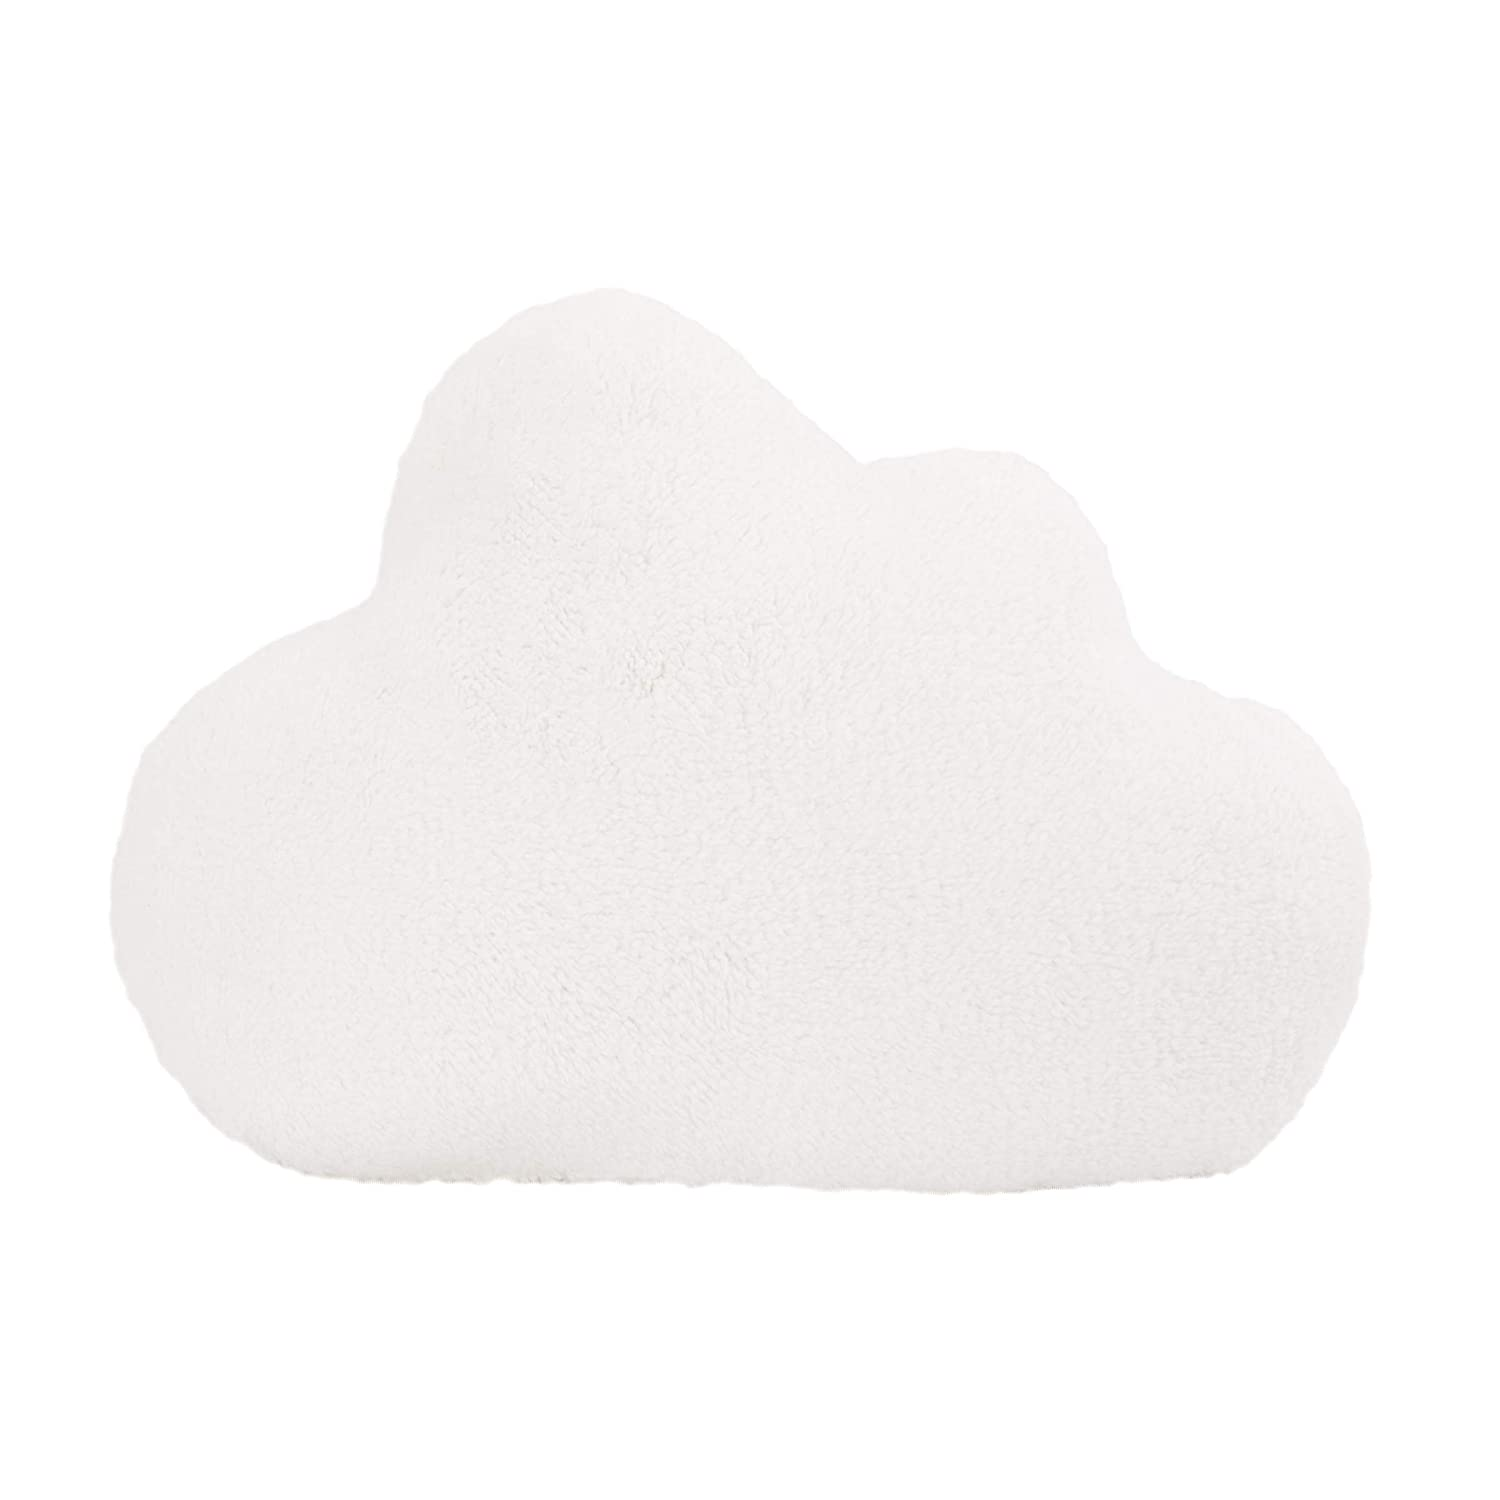 Little Love by NoJo Cloud Shaped Pillow, White : Baby